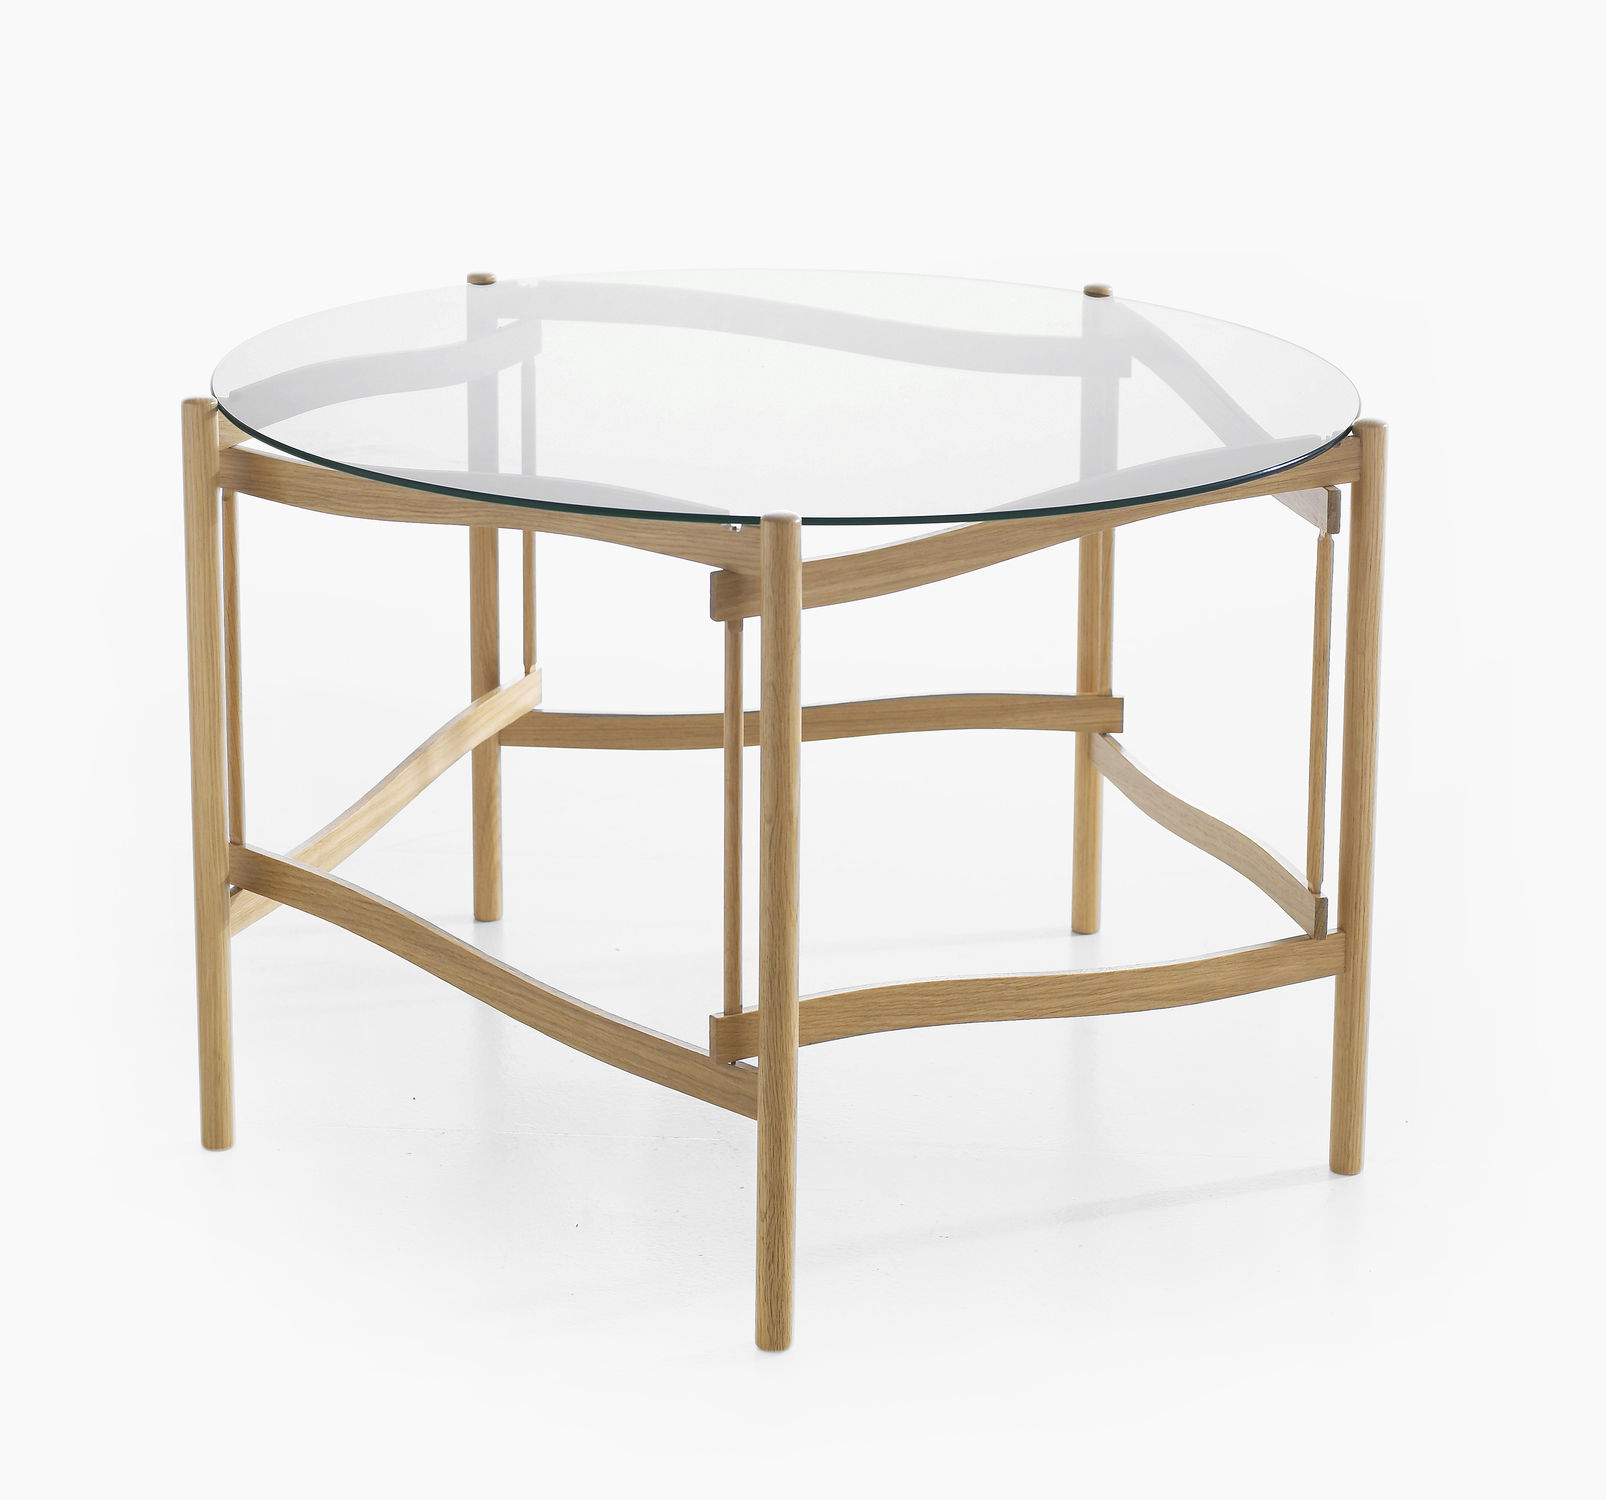 Contemporary coffee table glass oak beech TEMA by Hans